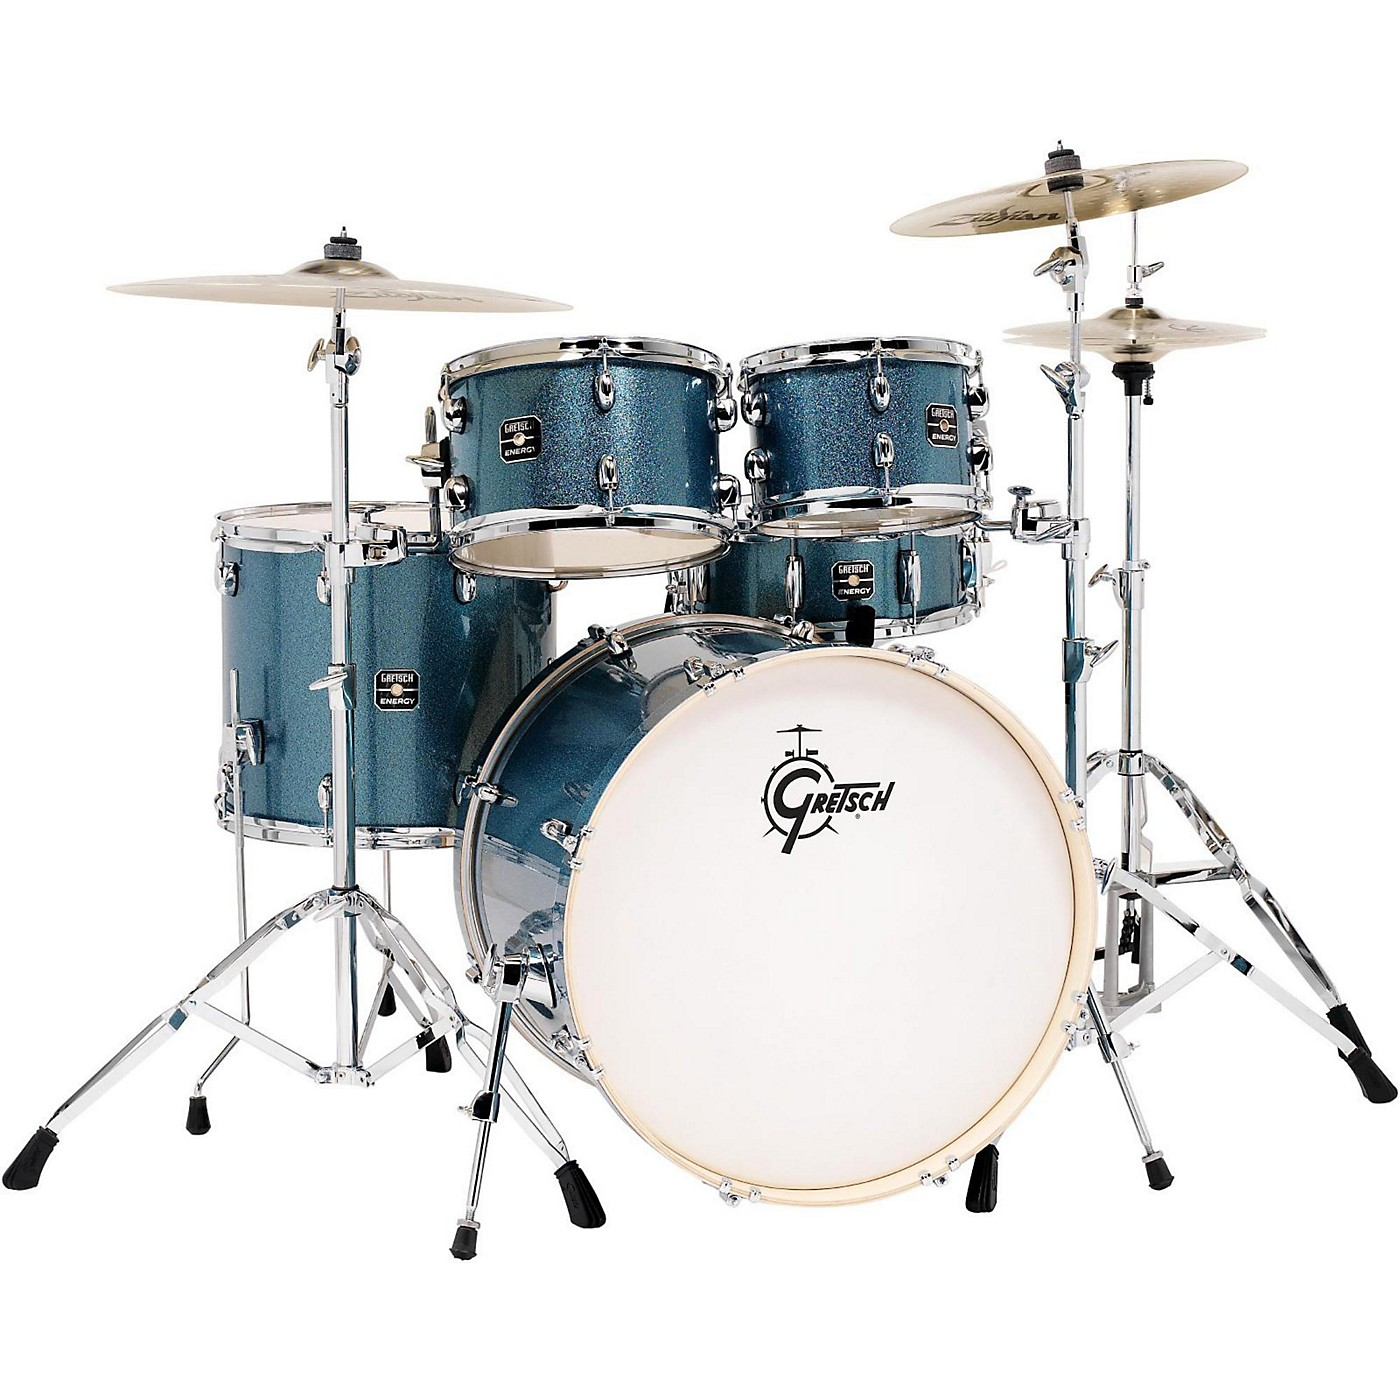 Gretsch Drums Energy 5-Piece Drum Set Blue Sparkle with Hardware and Zildjian Cymbals thumbnail